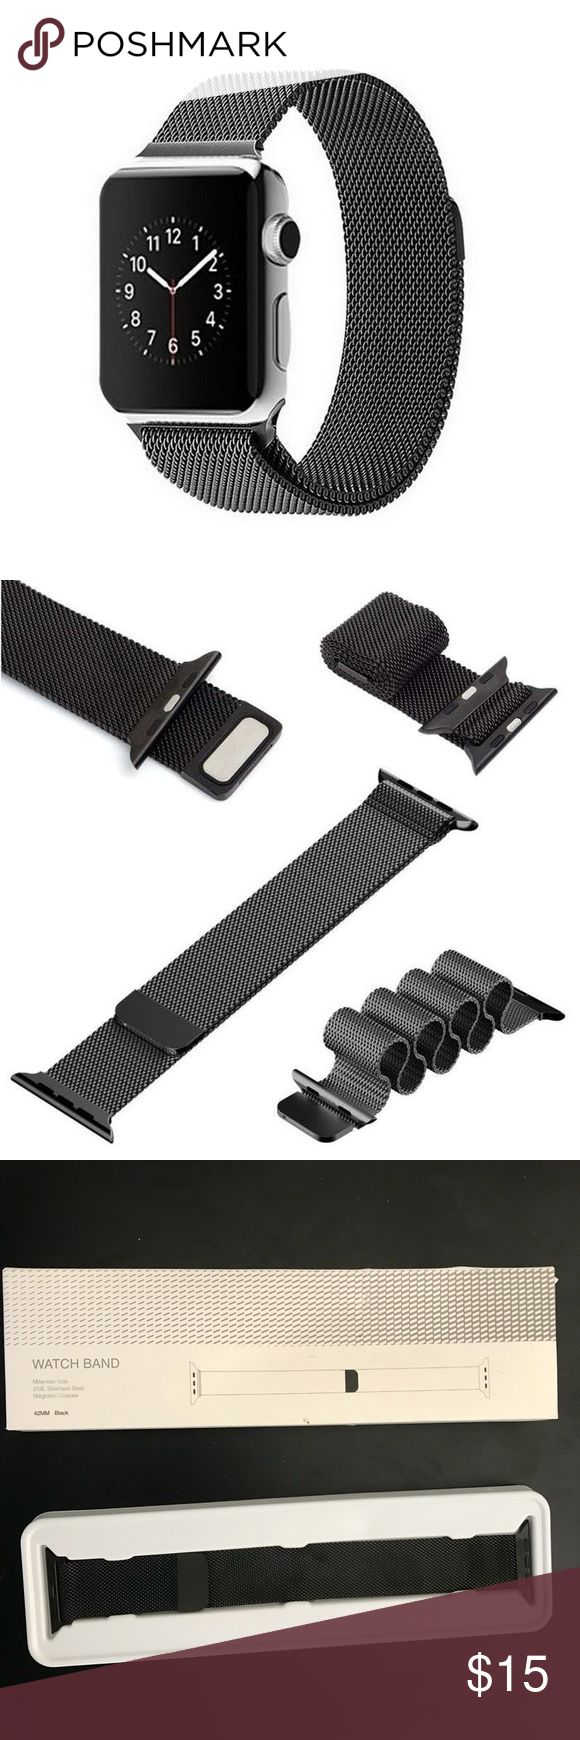 NEW Apple Watch Band Milanese stainless steel 42mm High Quality Stainless Steel Mesh  Extra Strong Magnet Clasp Easy to adjust the length to fit your wrist Passed Pulling Force Test Fits on Apple watch, Watch Sport, Watch Edition Very Soft and Comfortable Color: Black BAND ONLY - WATCH NOT INCLUDED Accessories Watches